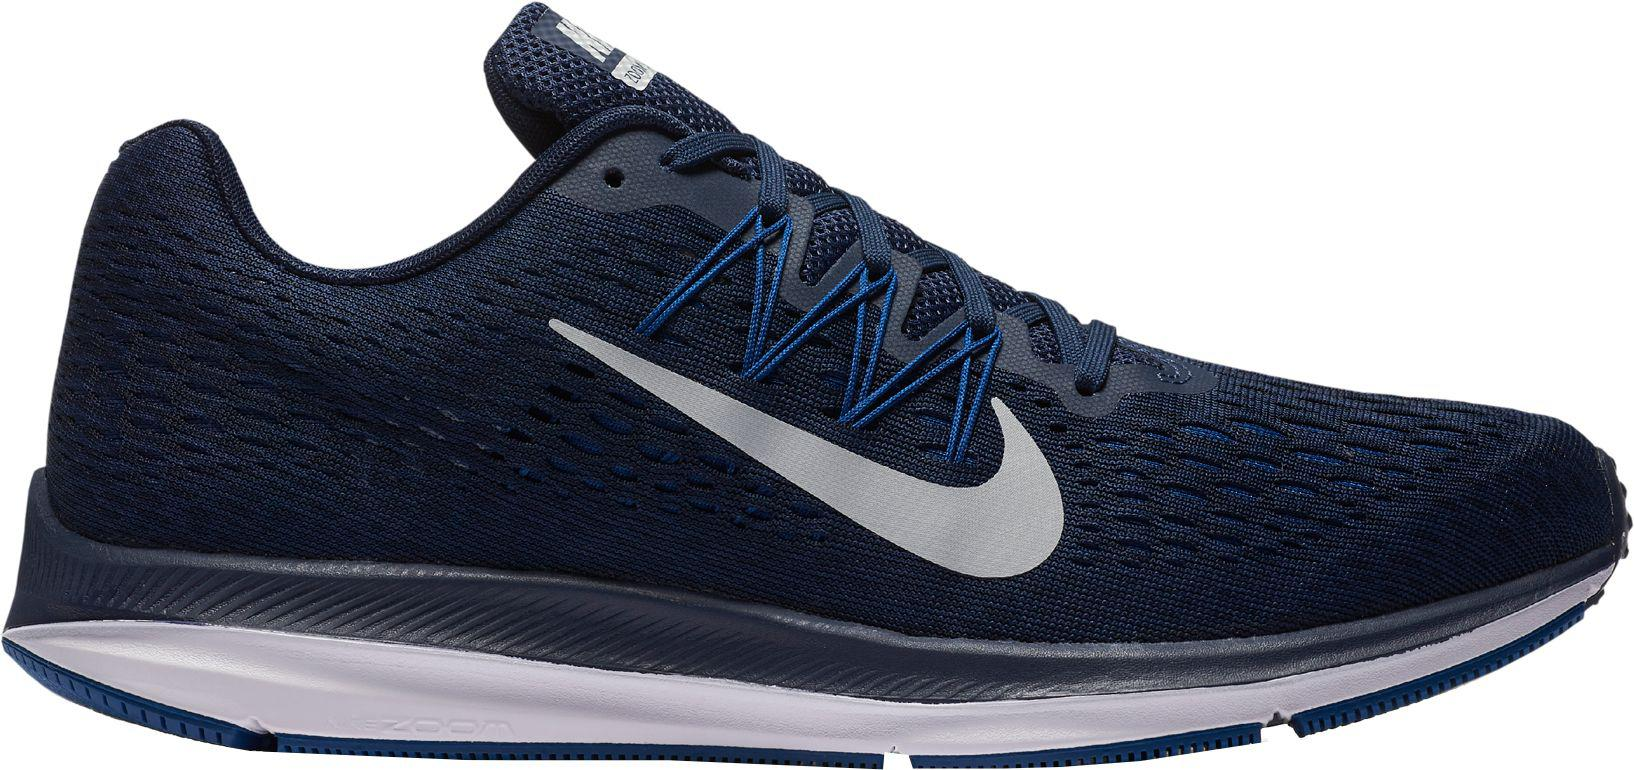 98a5702d212a Lyst - Nike Air Zoom Winflo 5 Running Shoes in Blue for Men